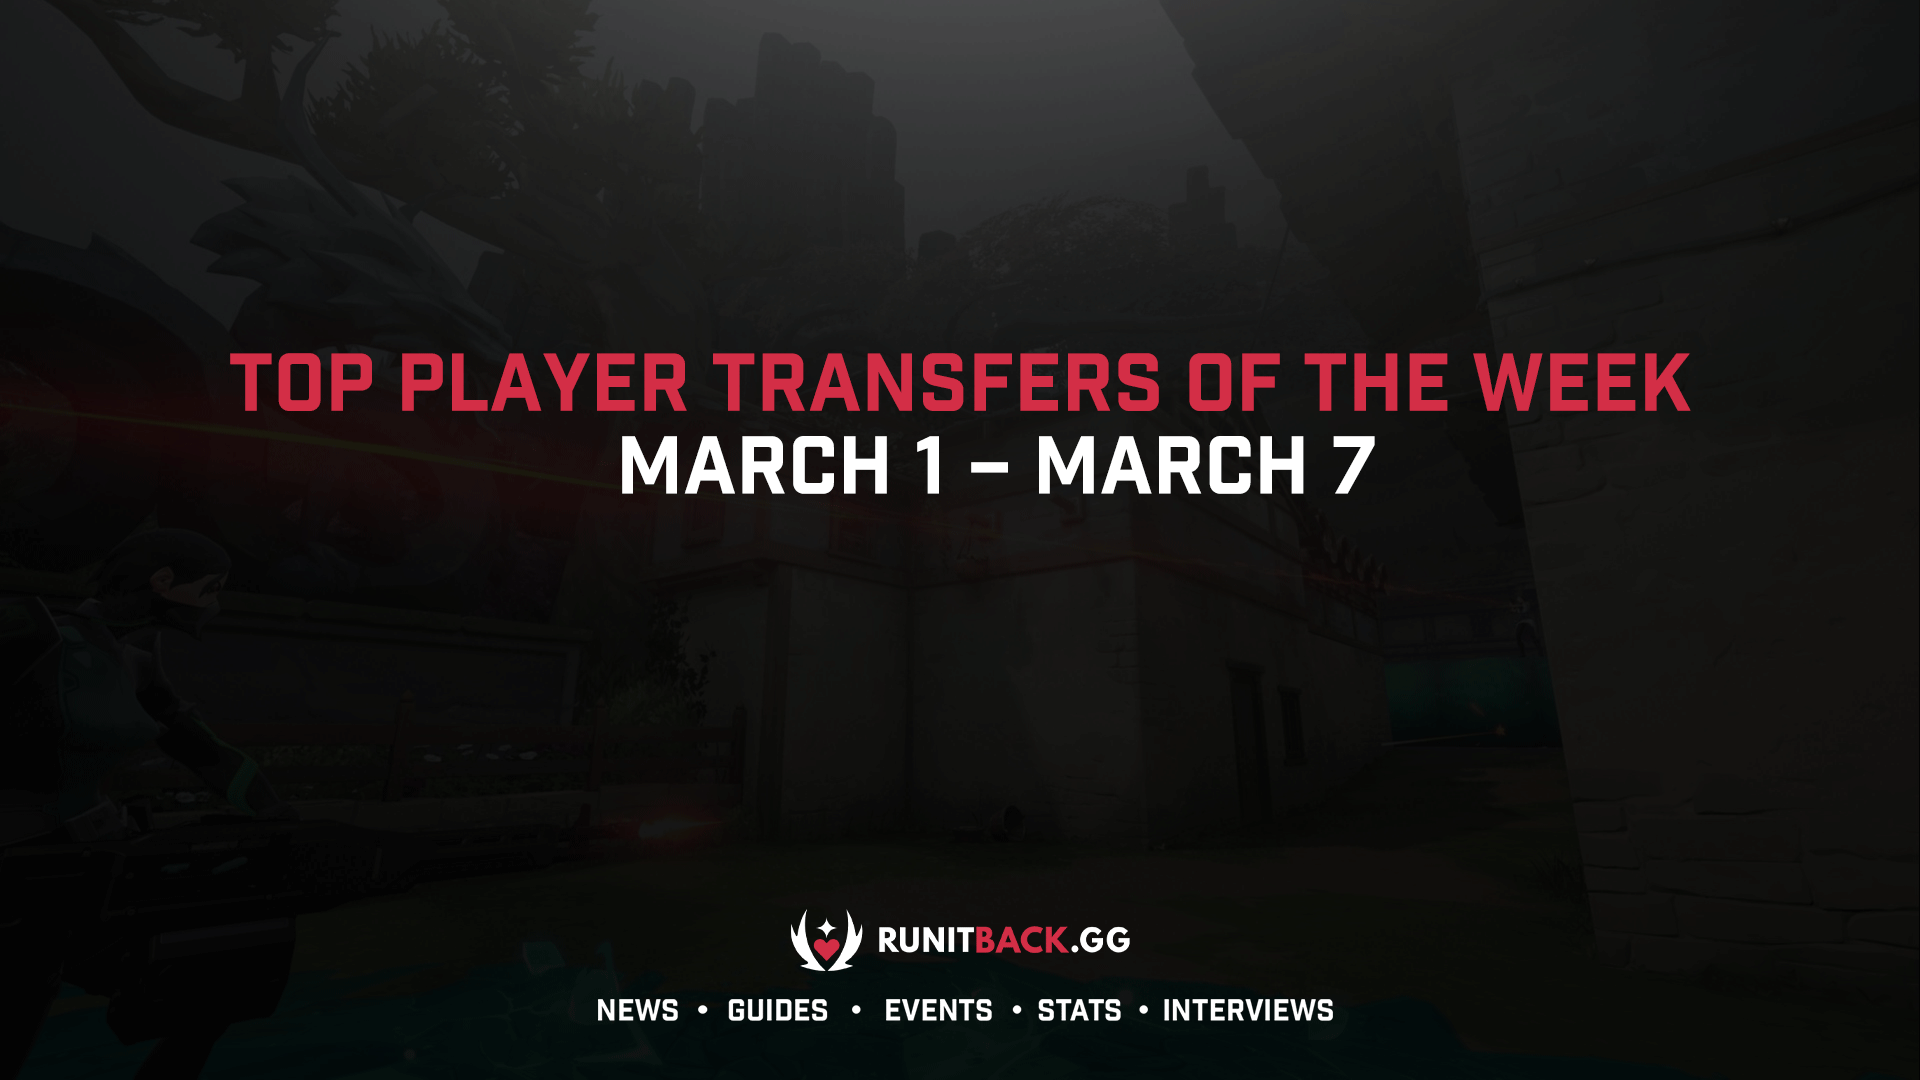 Top Player Transfers of the Week: March 1 – March 7